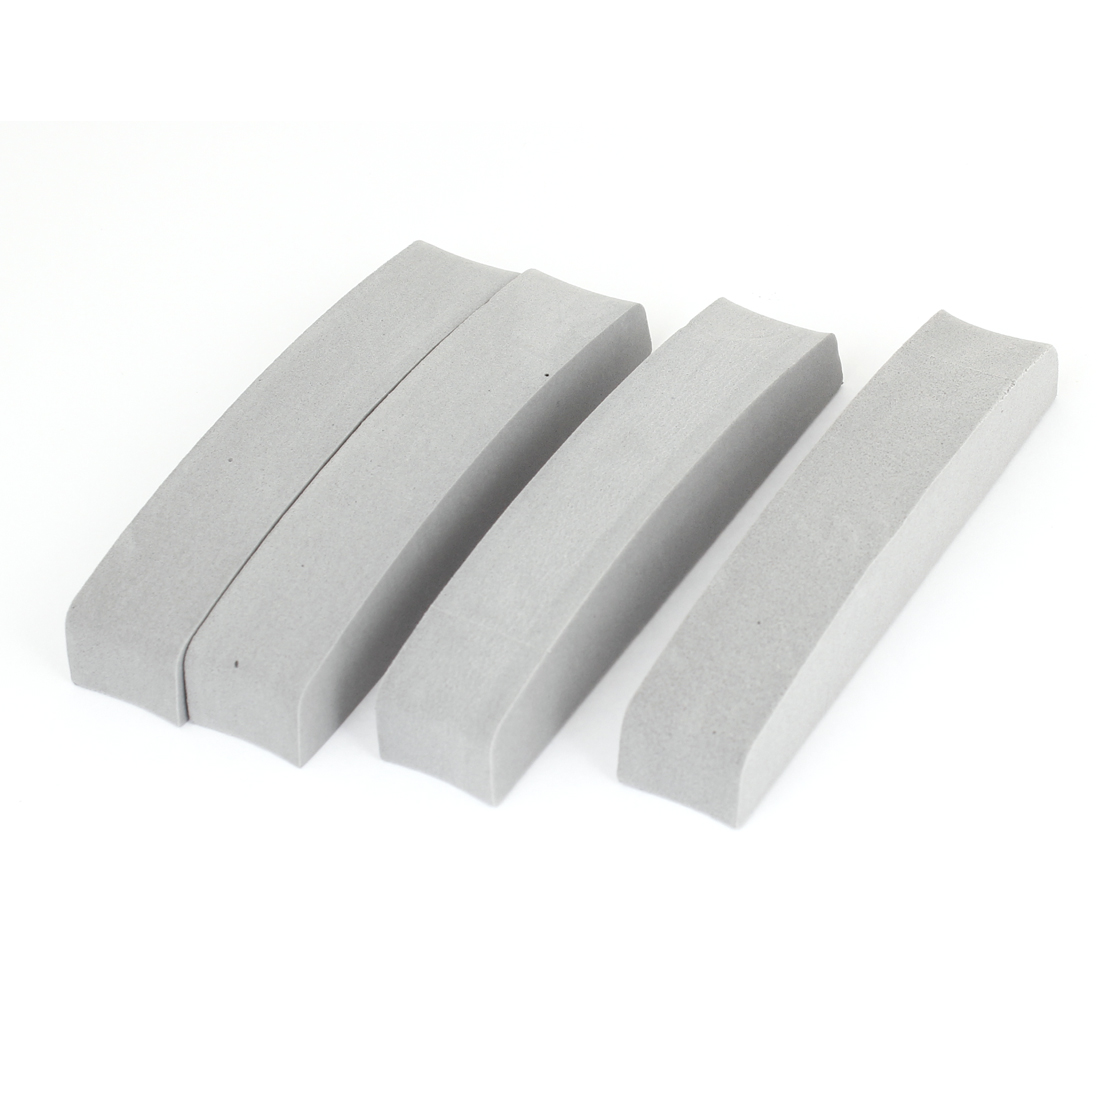 4pcs Self Adhesive Back Foam Protecting Door Guard Gray for Auto